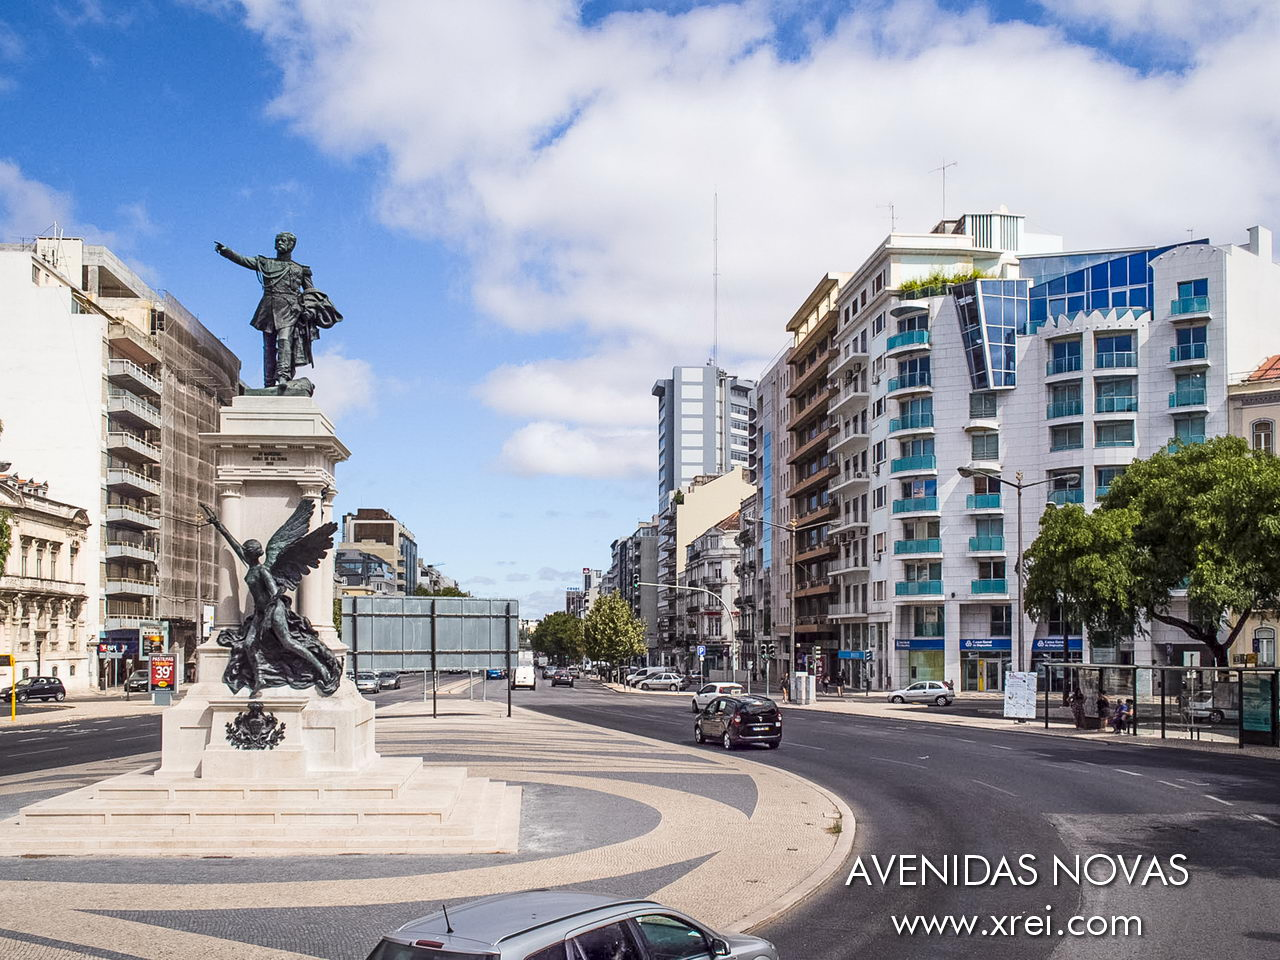 Avenidas Novas is the residential center of the middle, upper-middle and upper class of the city of Lisbon that grew in the late 19th and early 20th centuries with the expansion of the city of Lisbon to the north